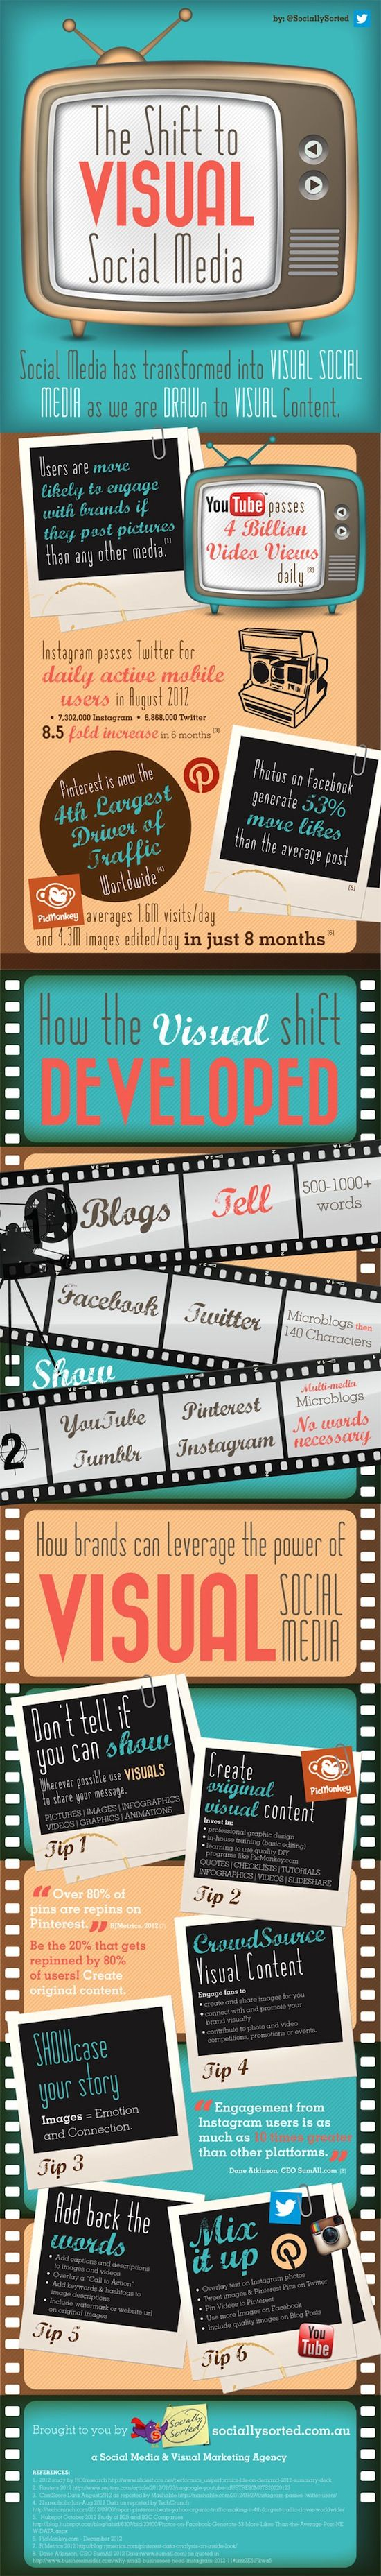 The shift to VISUAL (Picture Marketing) social media